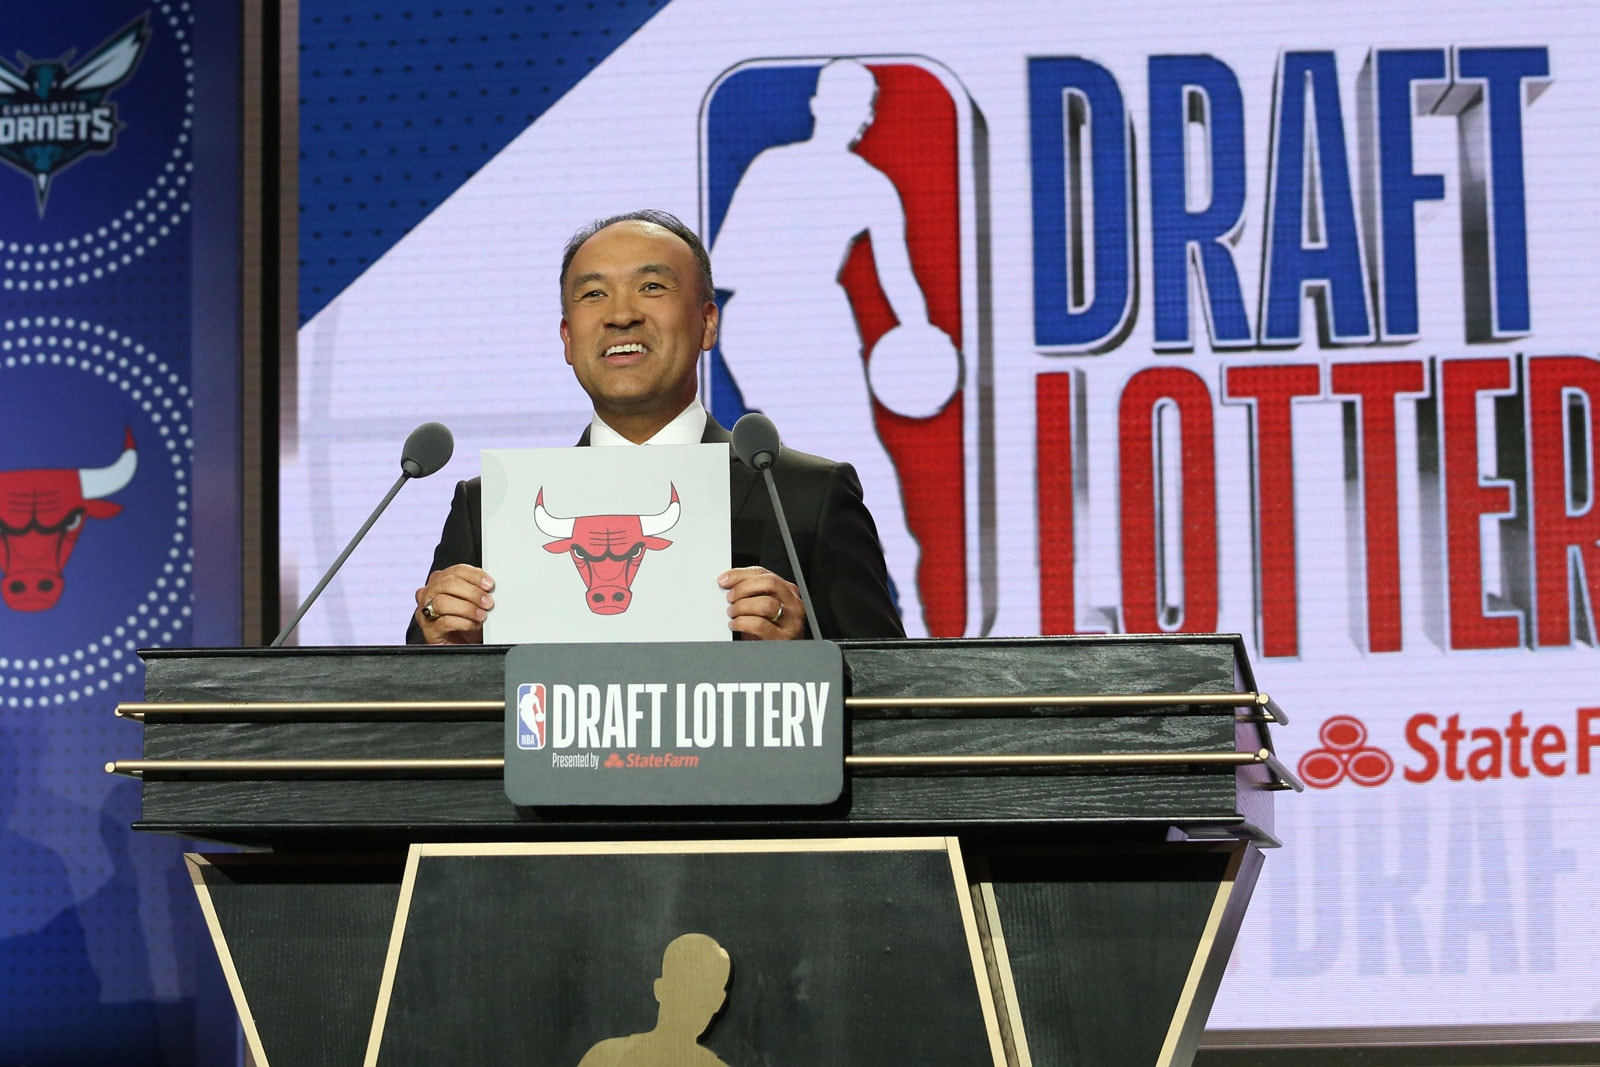 Deputy Commissioner of the NBA, Mark Tatum, holds up the card for the Chicago Bulls after they get the 7th overall pick in the NBA Draft during the 2019 NBA Draft Lottery on May 14, 2019 at the Chicago Hilton in Chicago, Illinois.